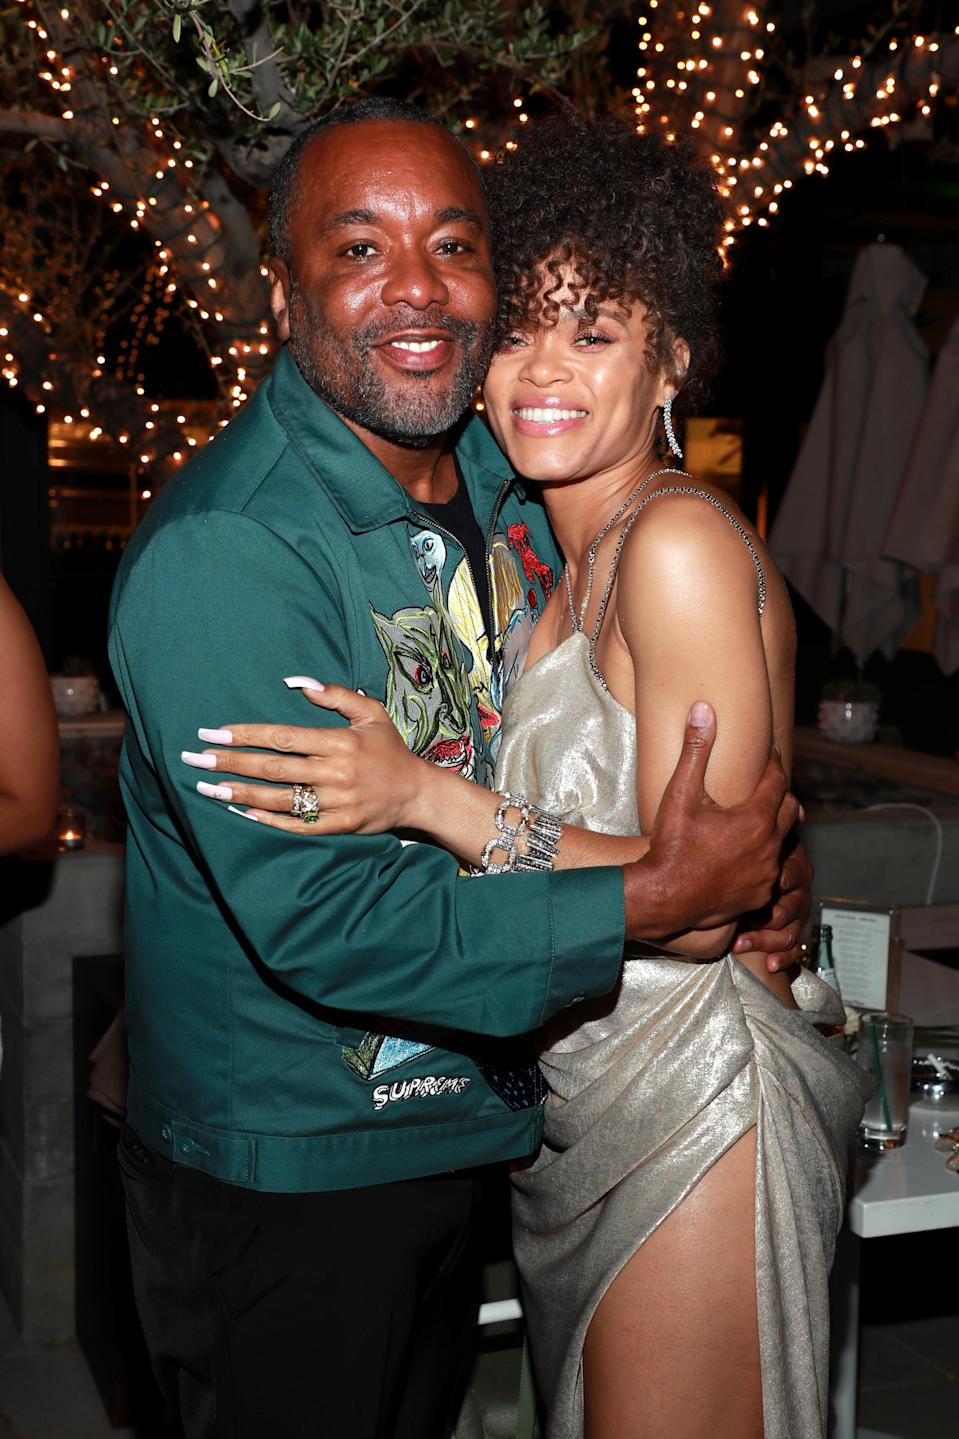 "Lee Daniels and Andra Day celebrate together at her after-party (she changed from her first golden <a href=""https://www.vanityfair.com/style/2021/04/inside-the-creation-of-andra-days-golden-oscar-look?mbid=synd_yahoo_rss"" rel=""nofollow noopener"" target=""_blank"" data-ylk=""slk:Vera Wang"" class=""link rapid-noclick-resp"">Vera Wang</a> gown to her second for the night)."